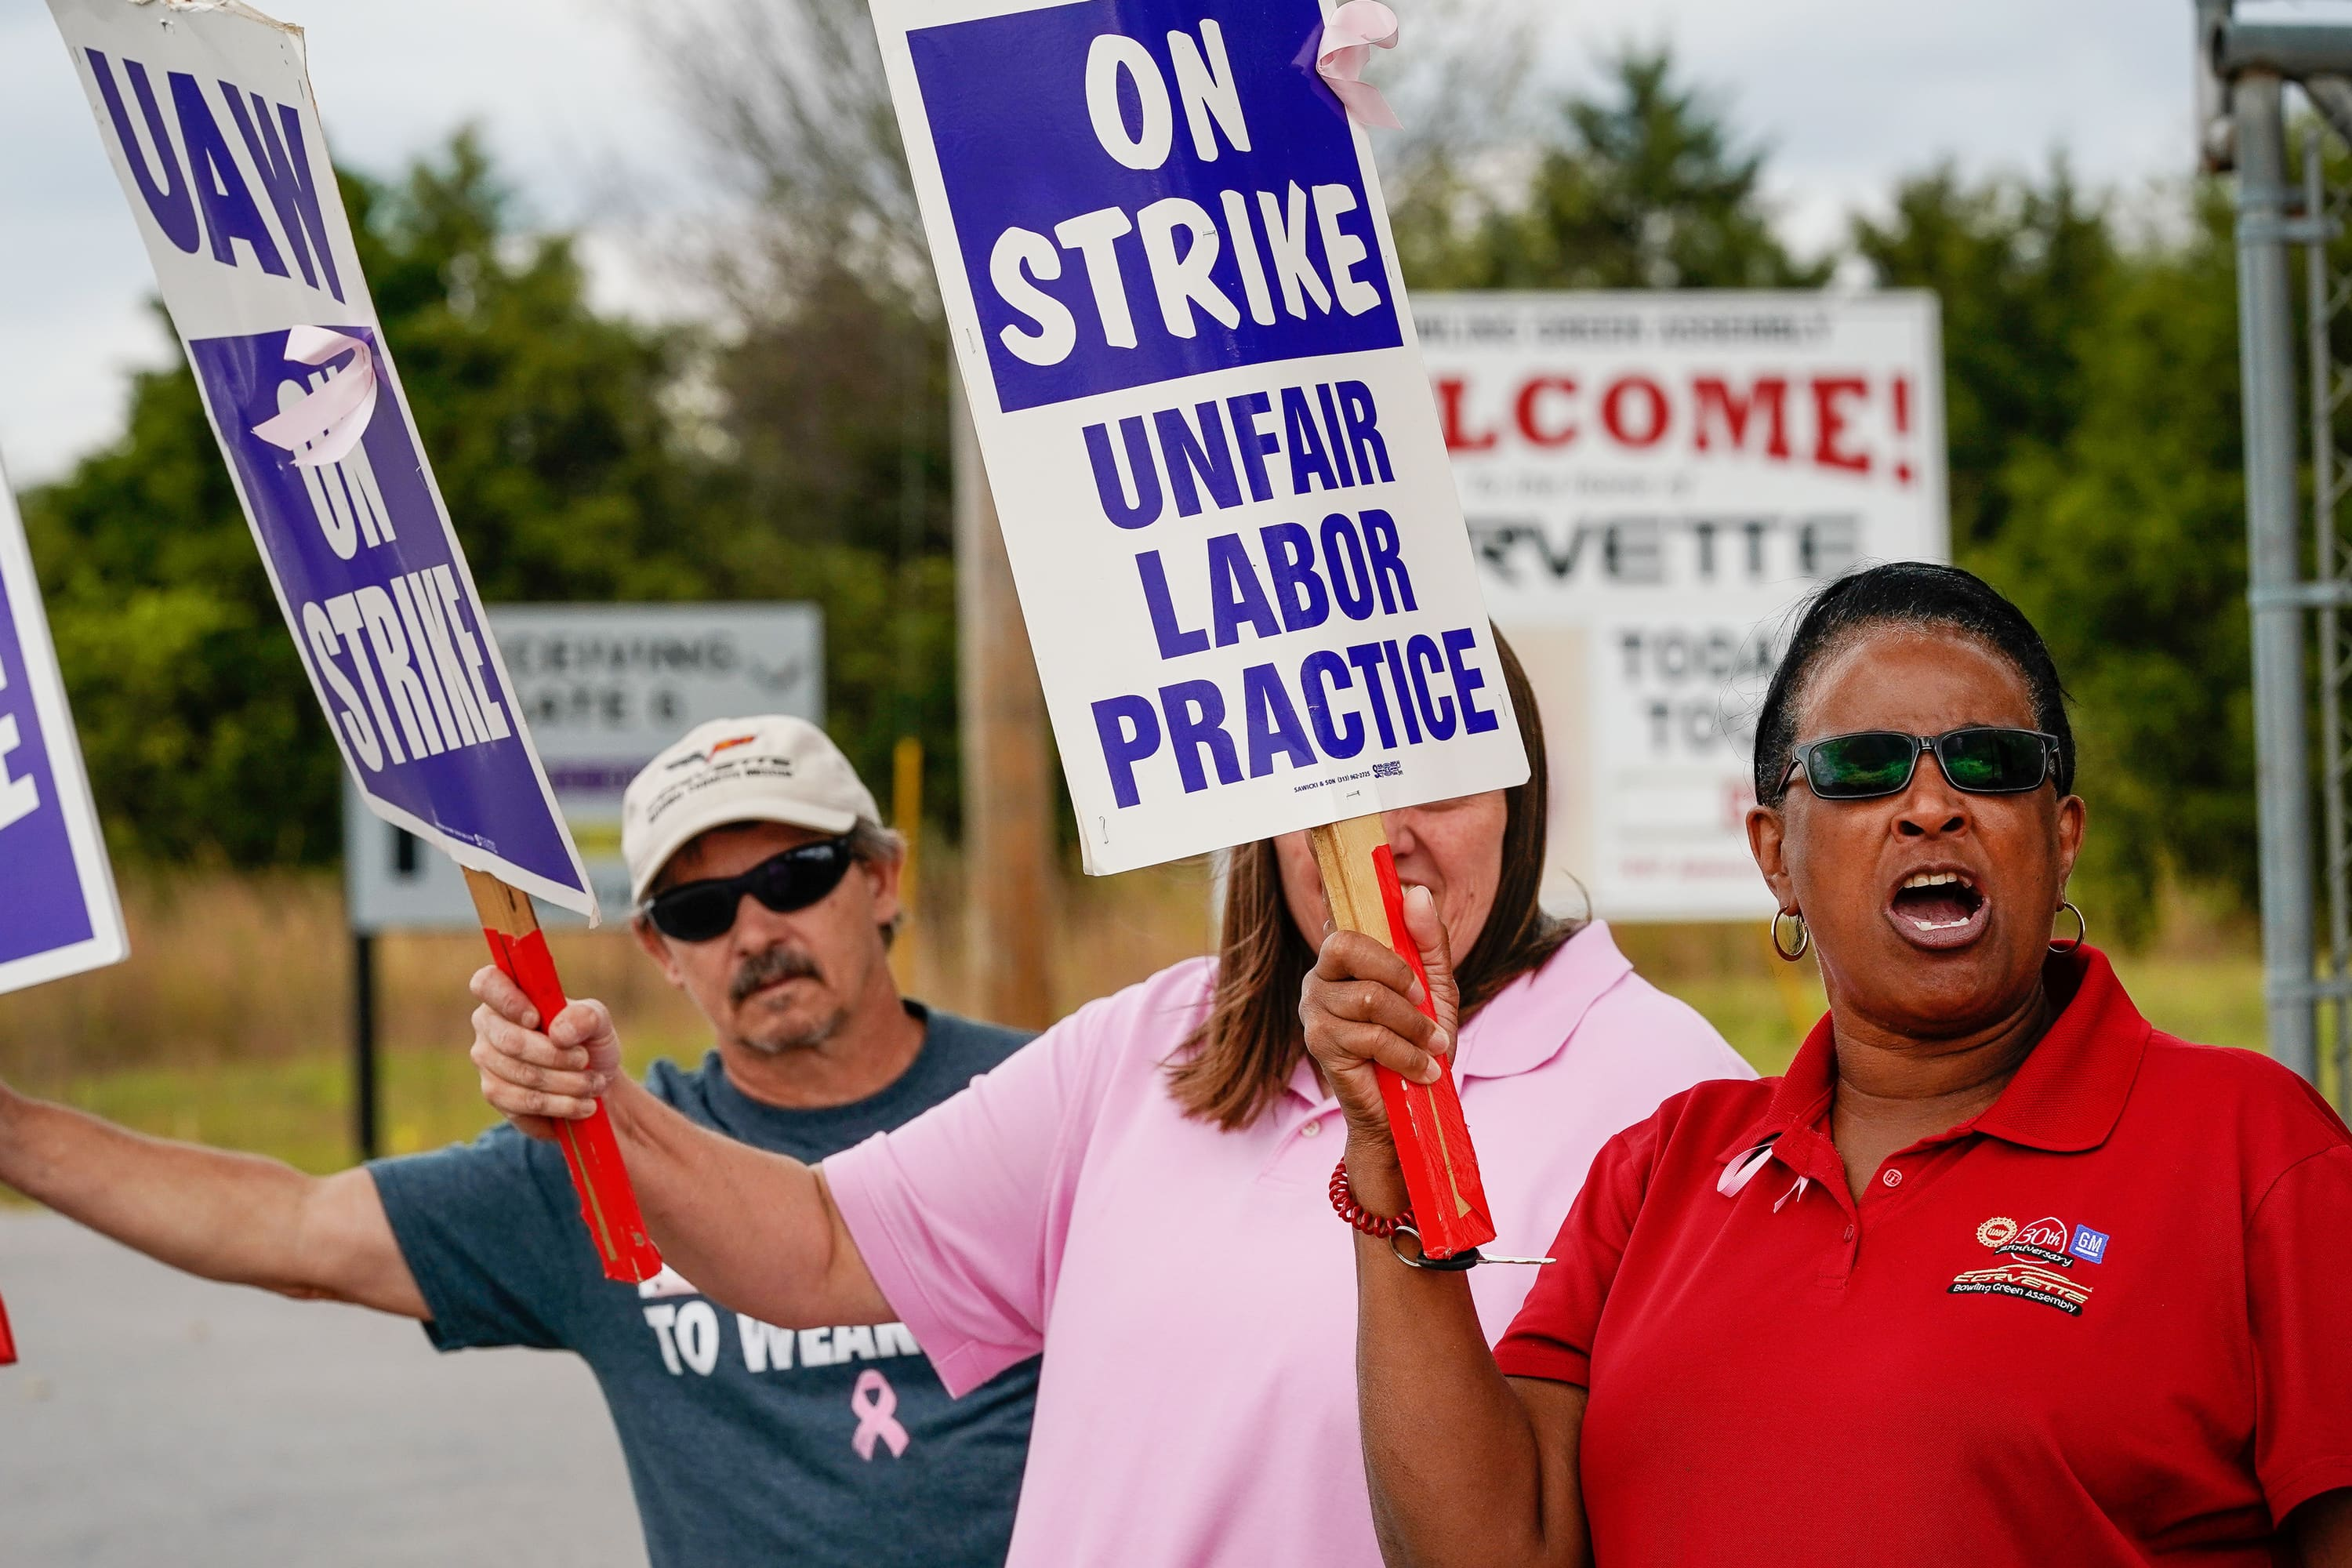 October job creation comes in at 128,000, easily topping estimates even with GM auto strike